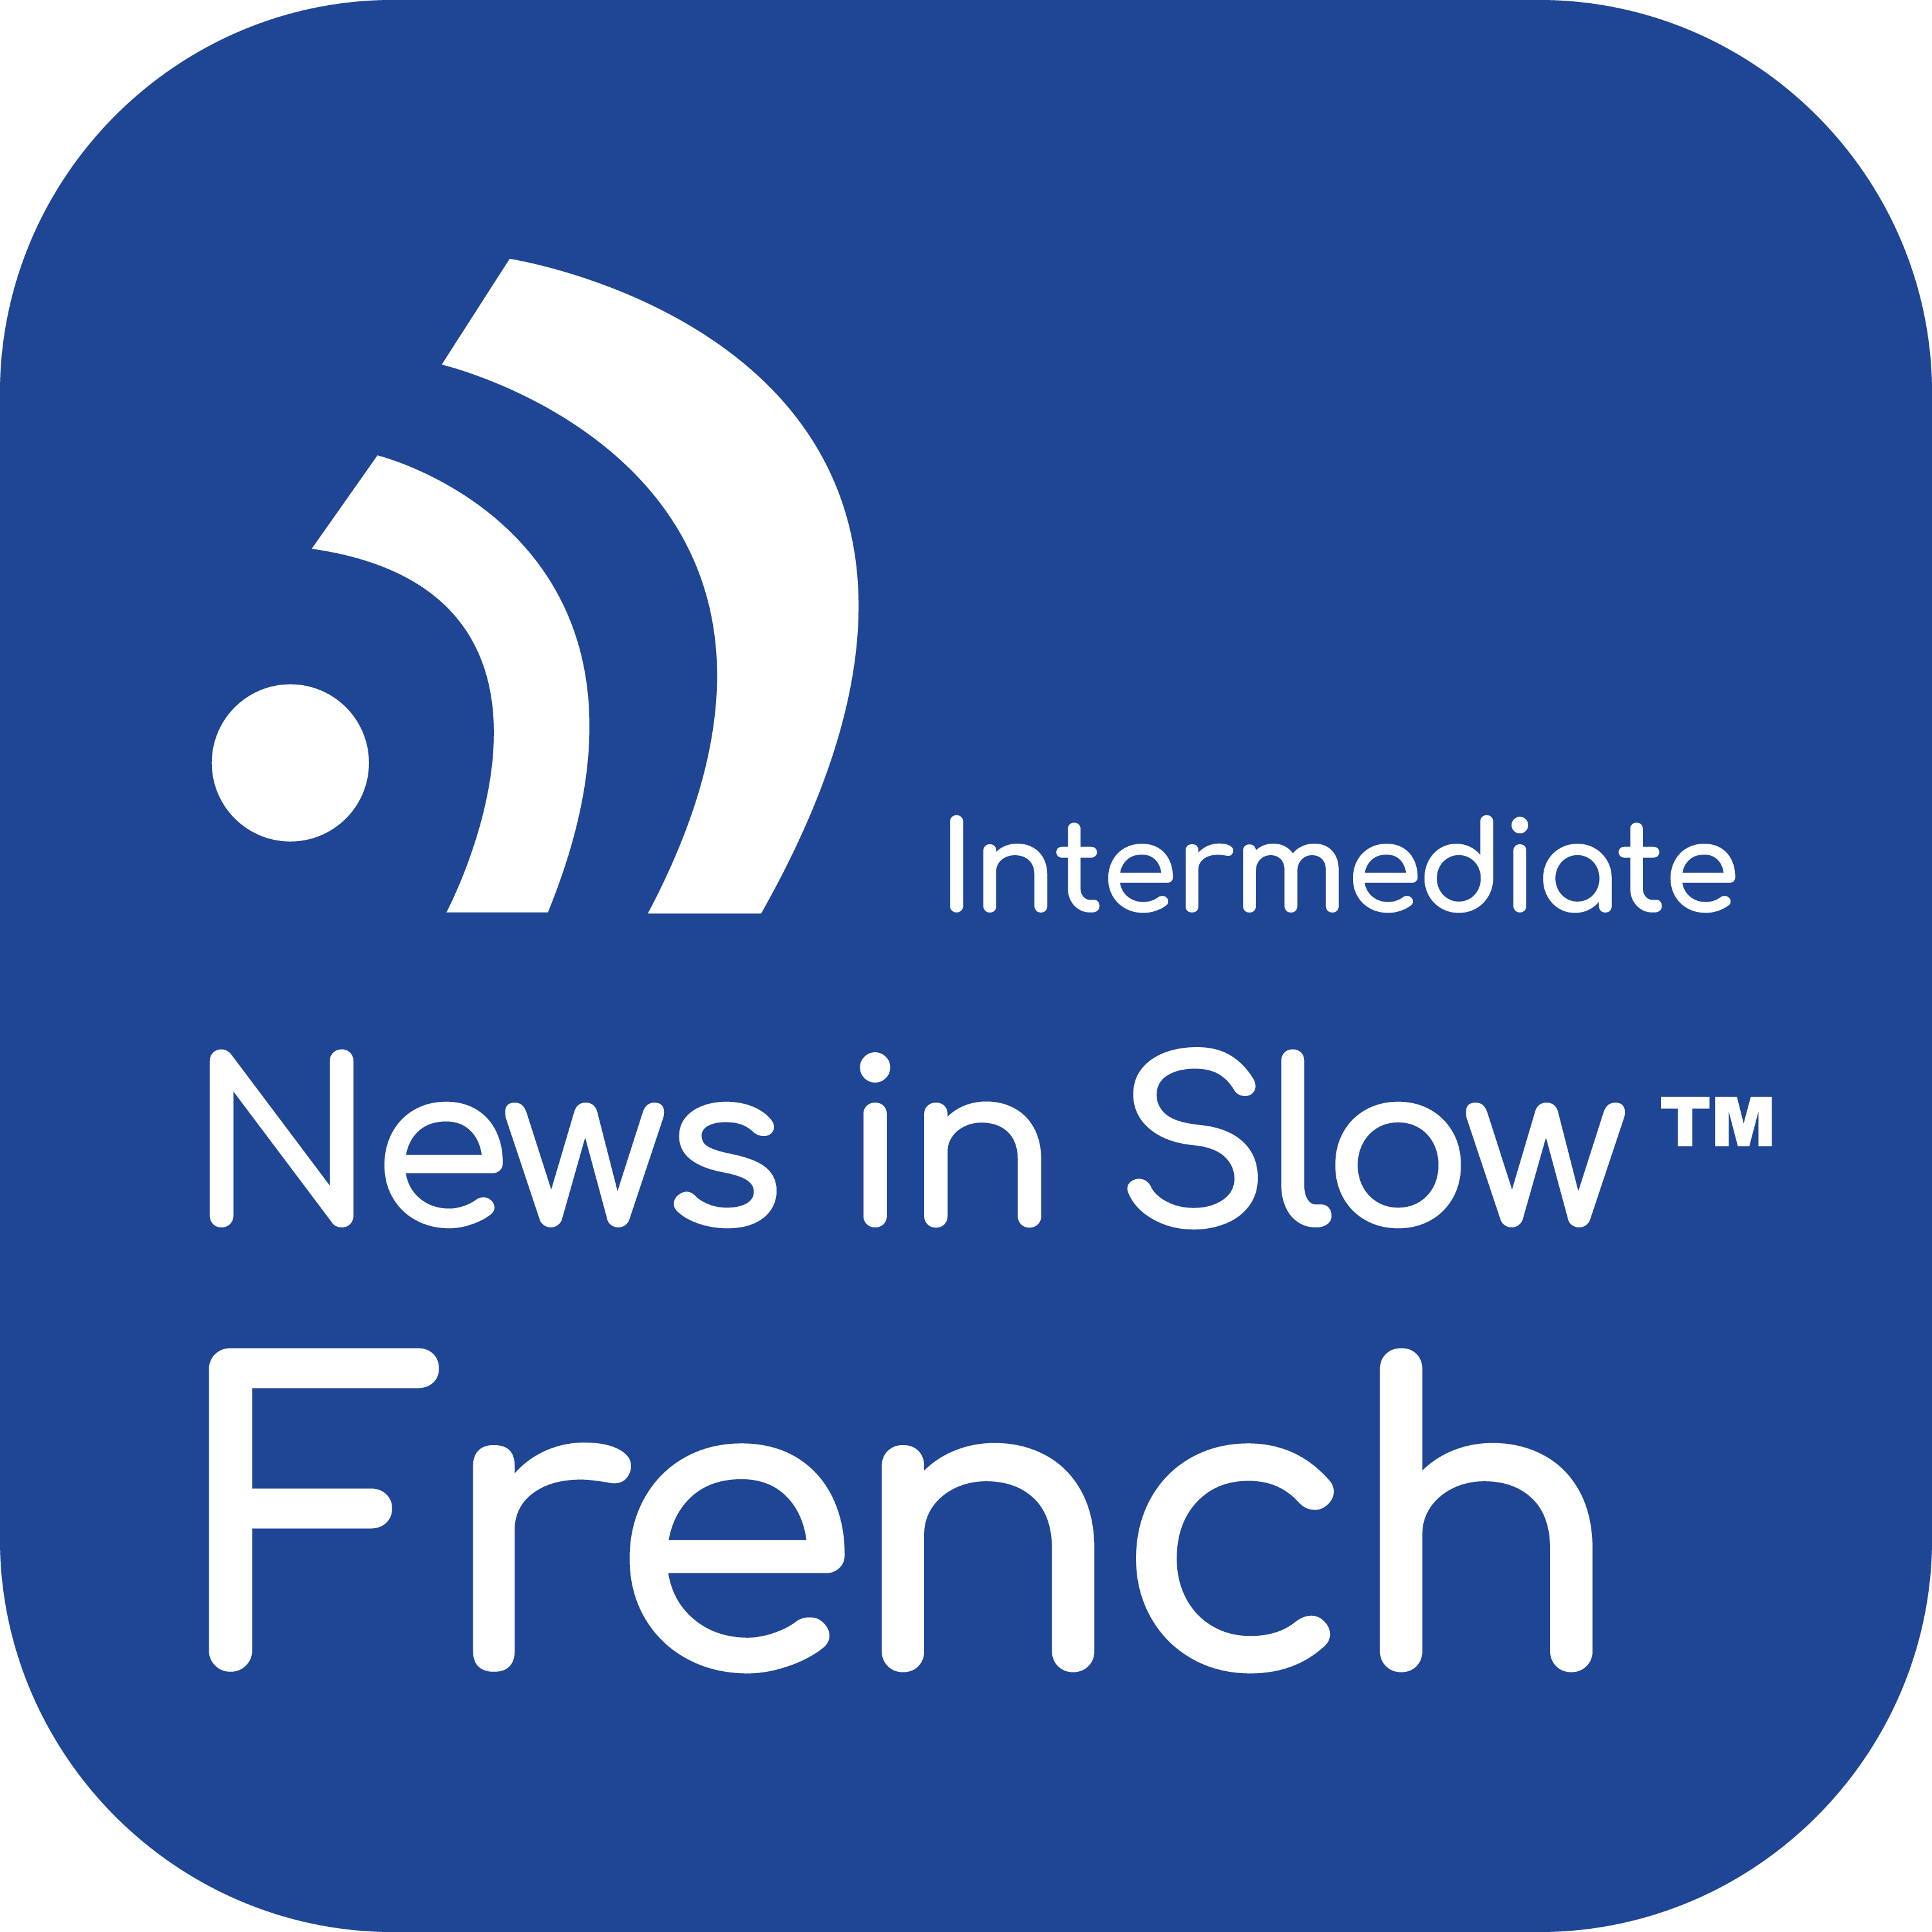 News in Slow French #489 - French Course with Current Events